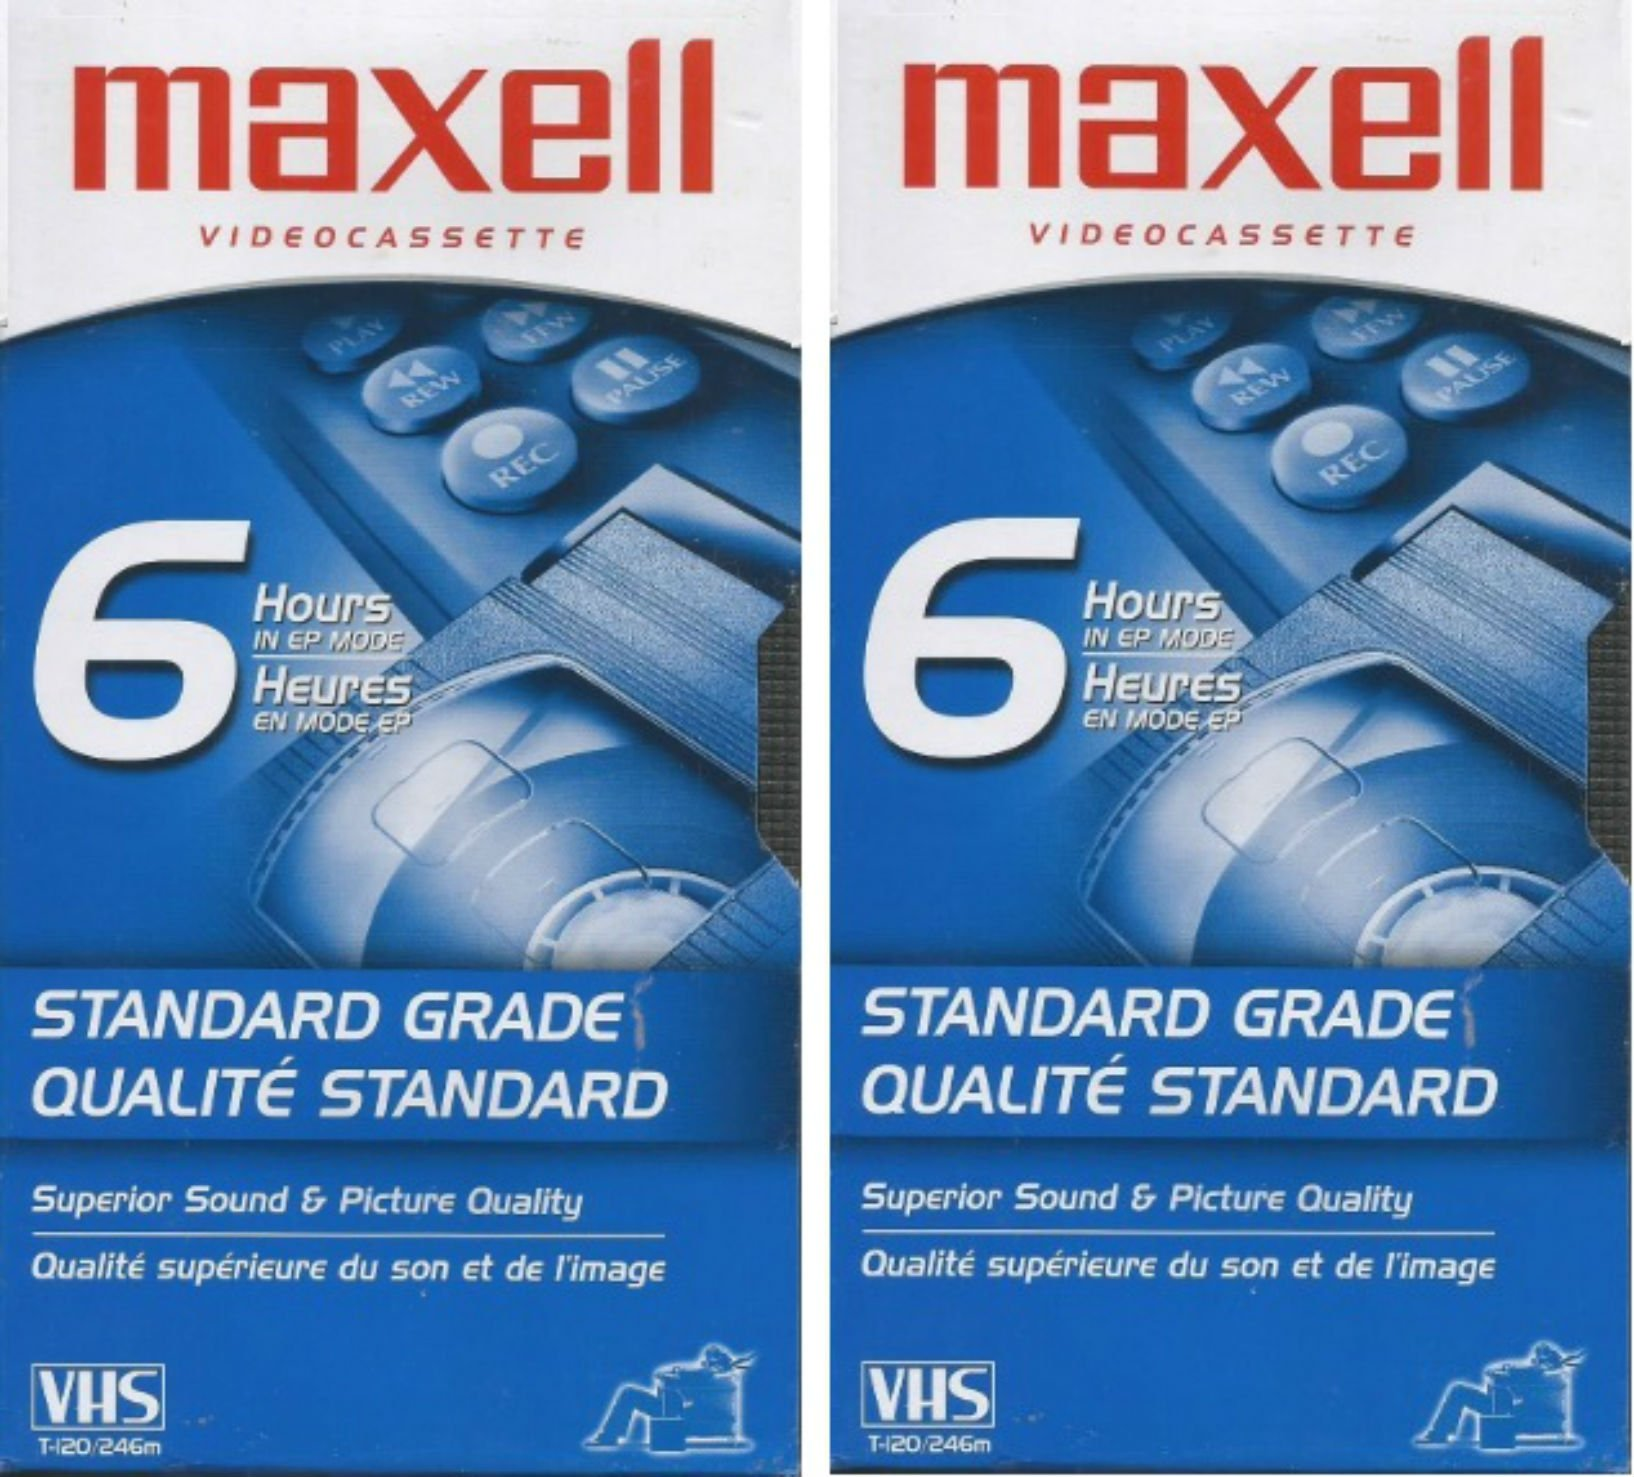 Maxell VHS T-120/246m 2pk by Maxwell